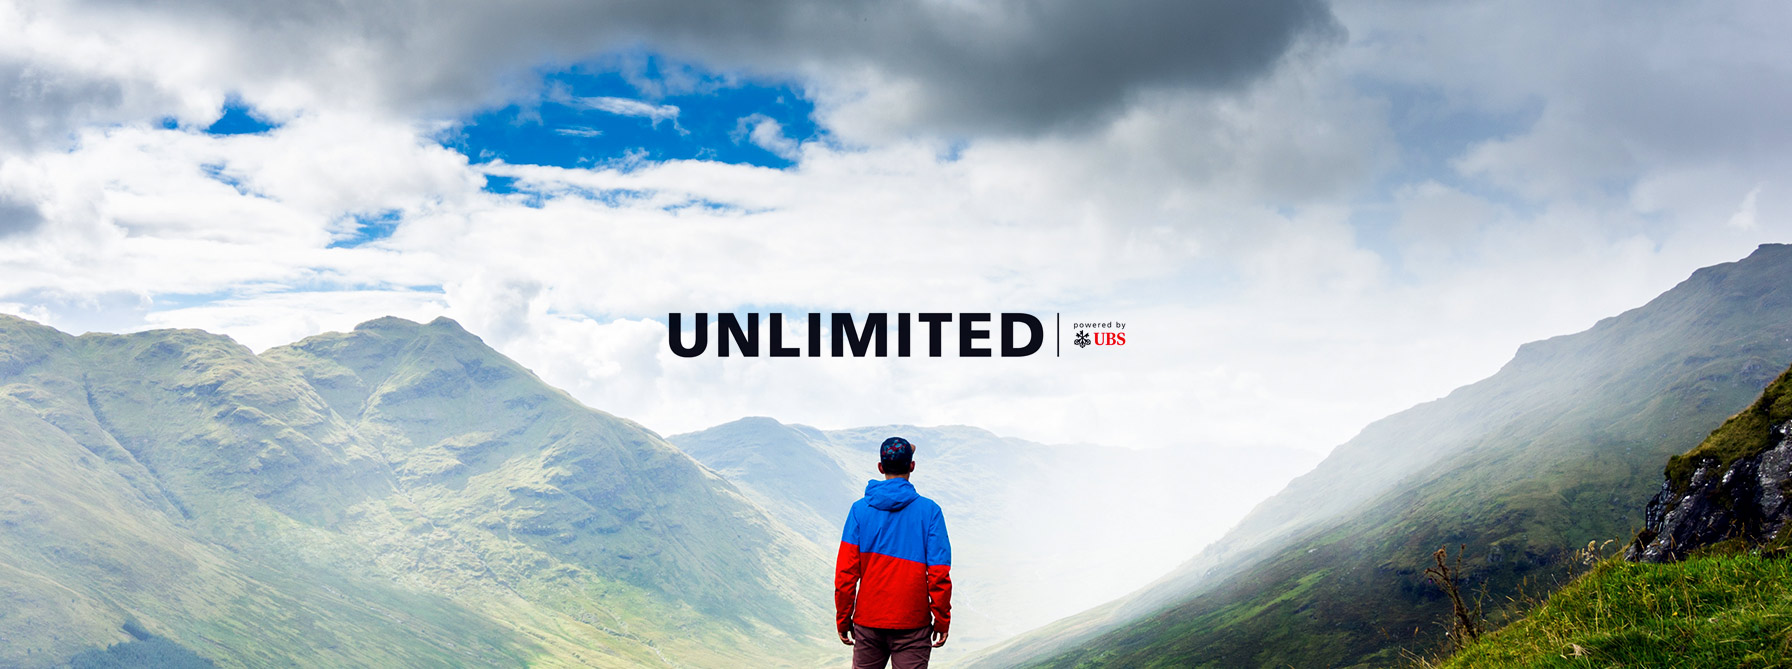 6 content lessons from UBS' Unlimited newsroom header